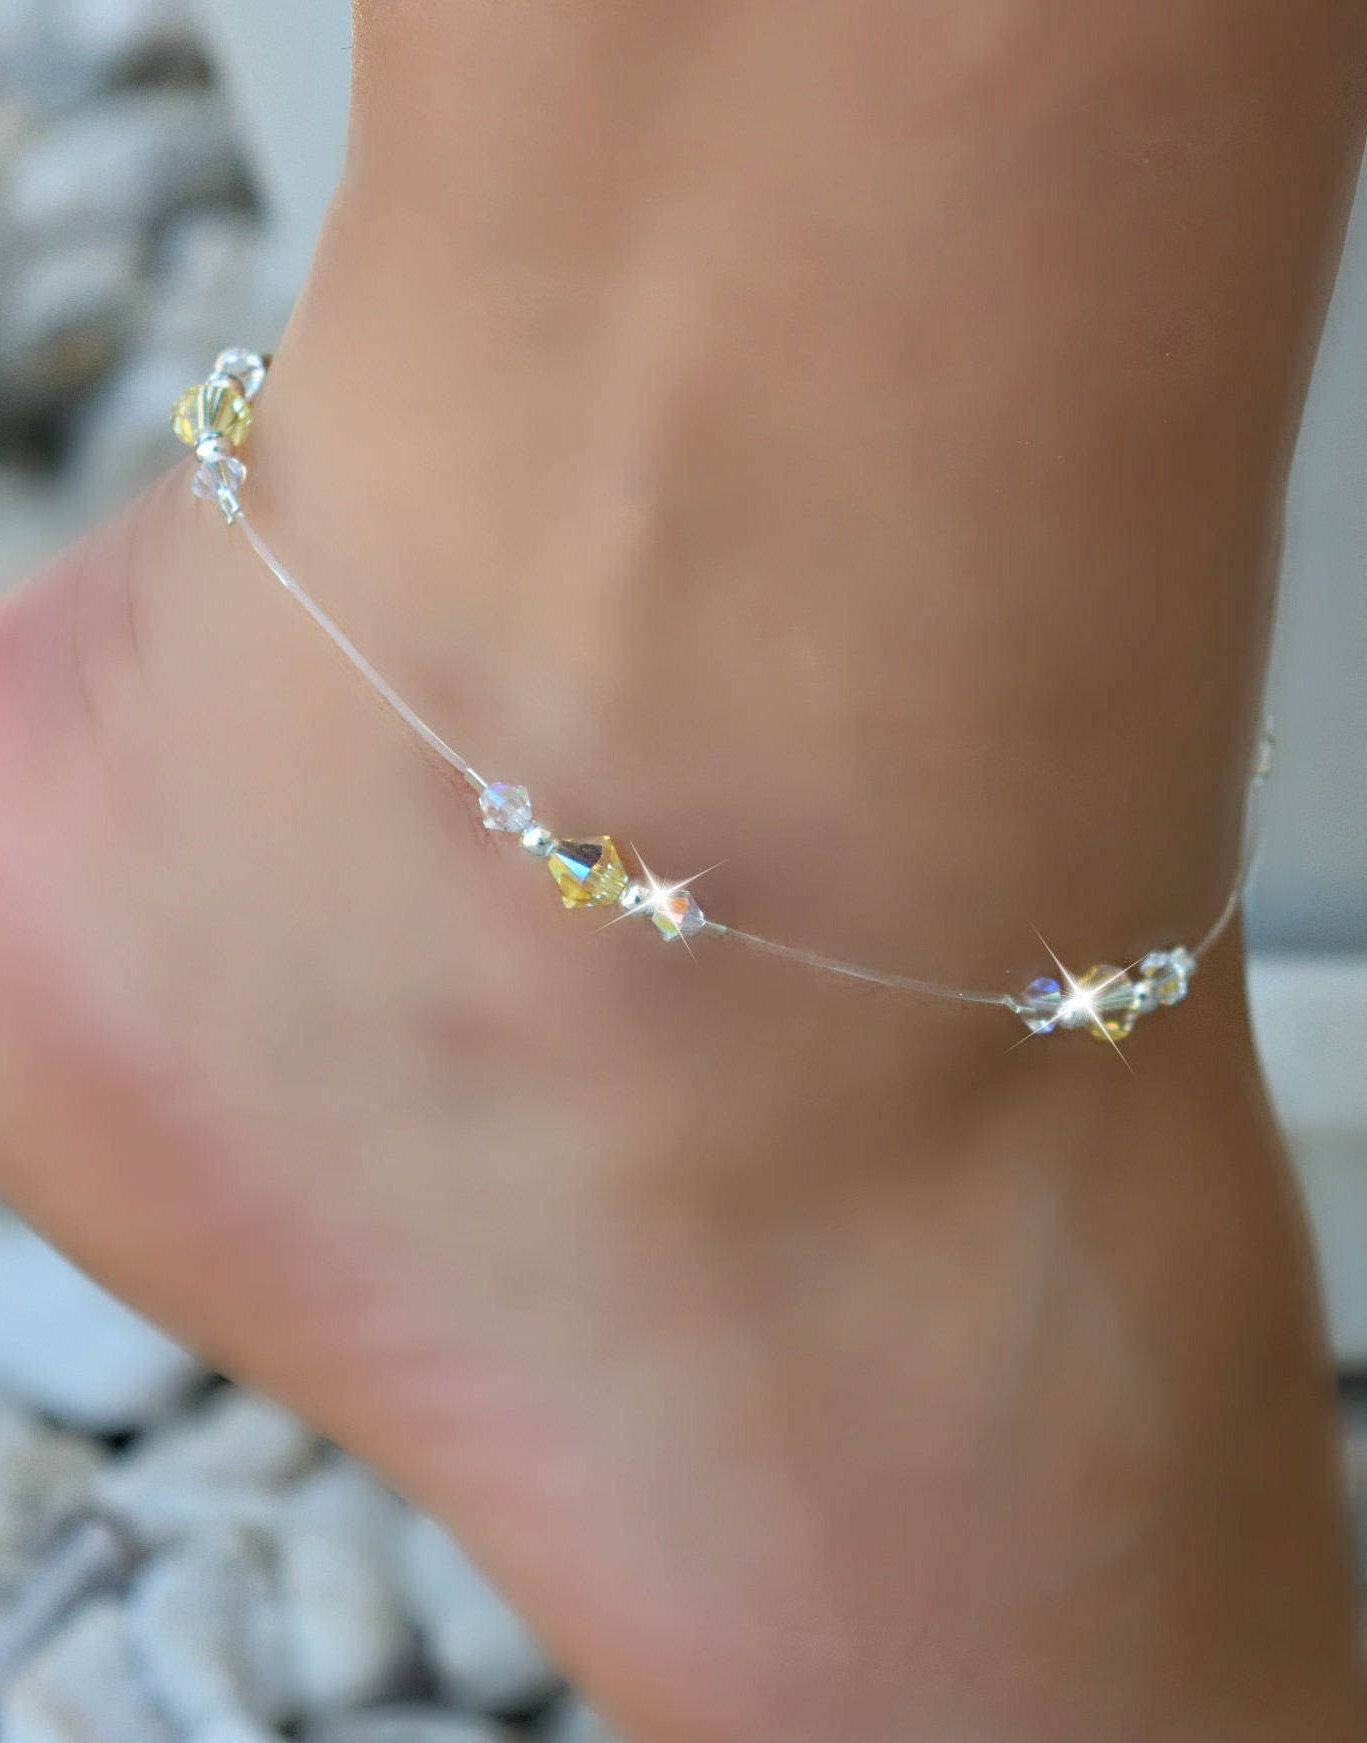 anklet clear or pretty charm beads dangle blue pink ankle bracelets pin with bracelet bird